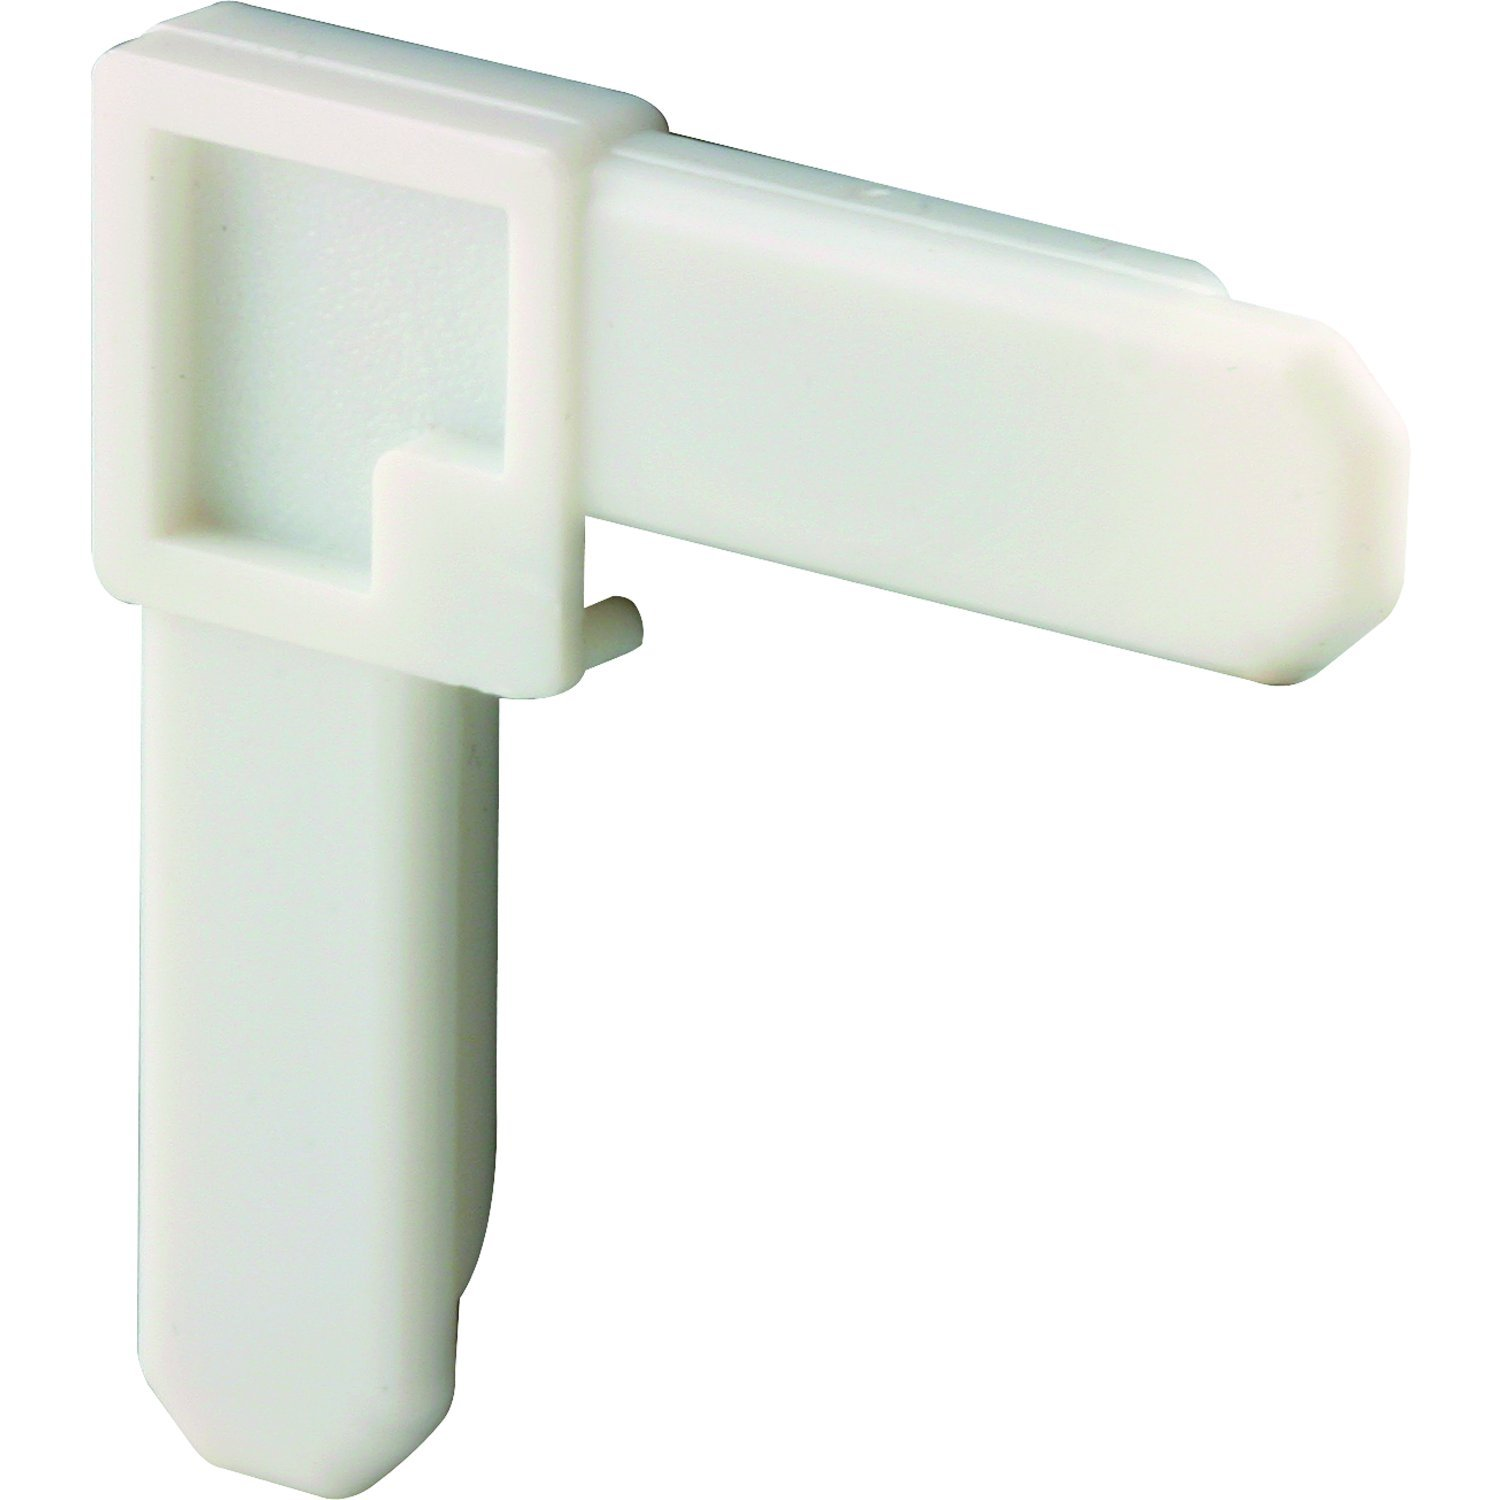 Prime-Line MP7720 Plastic Screen Frame Corner, 1/4 in. x 3/4 in, White Finish, (Box of 100)